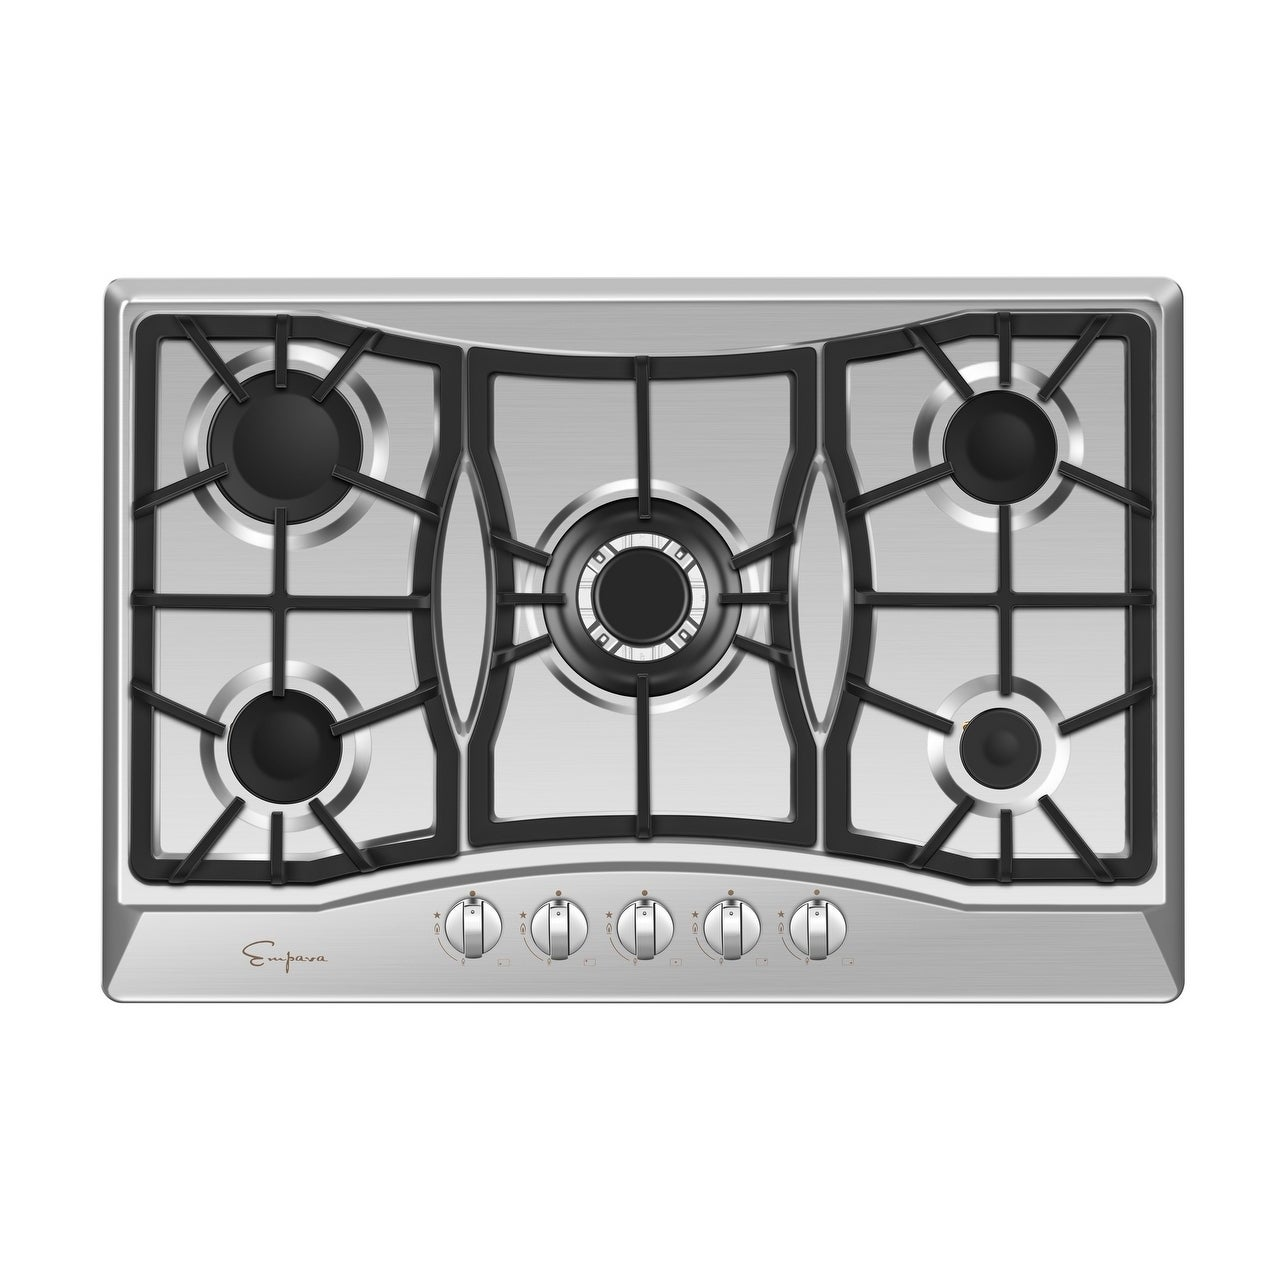 30 inches Gas Cooktop 5 Burners Gas Stove gas hob stovetop Stainless Steel Cooktop 5 Sealed Burners Cast Iron Grates Built-in Gas Stove Top LPG//NG Gas Cooktop Thermocouple Protection and Easy to Clean